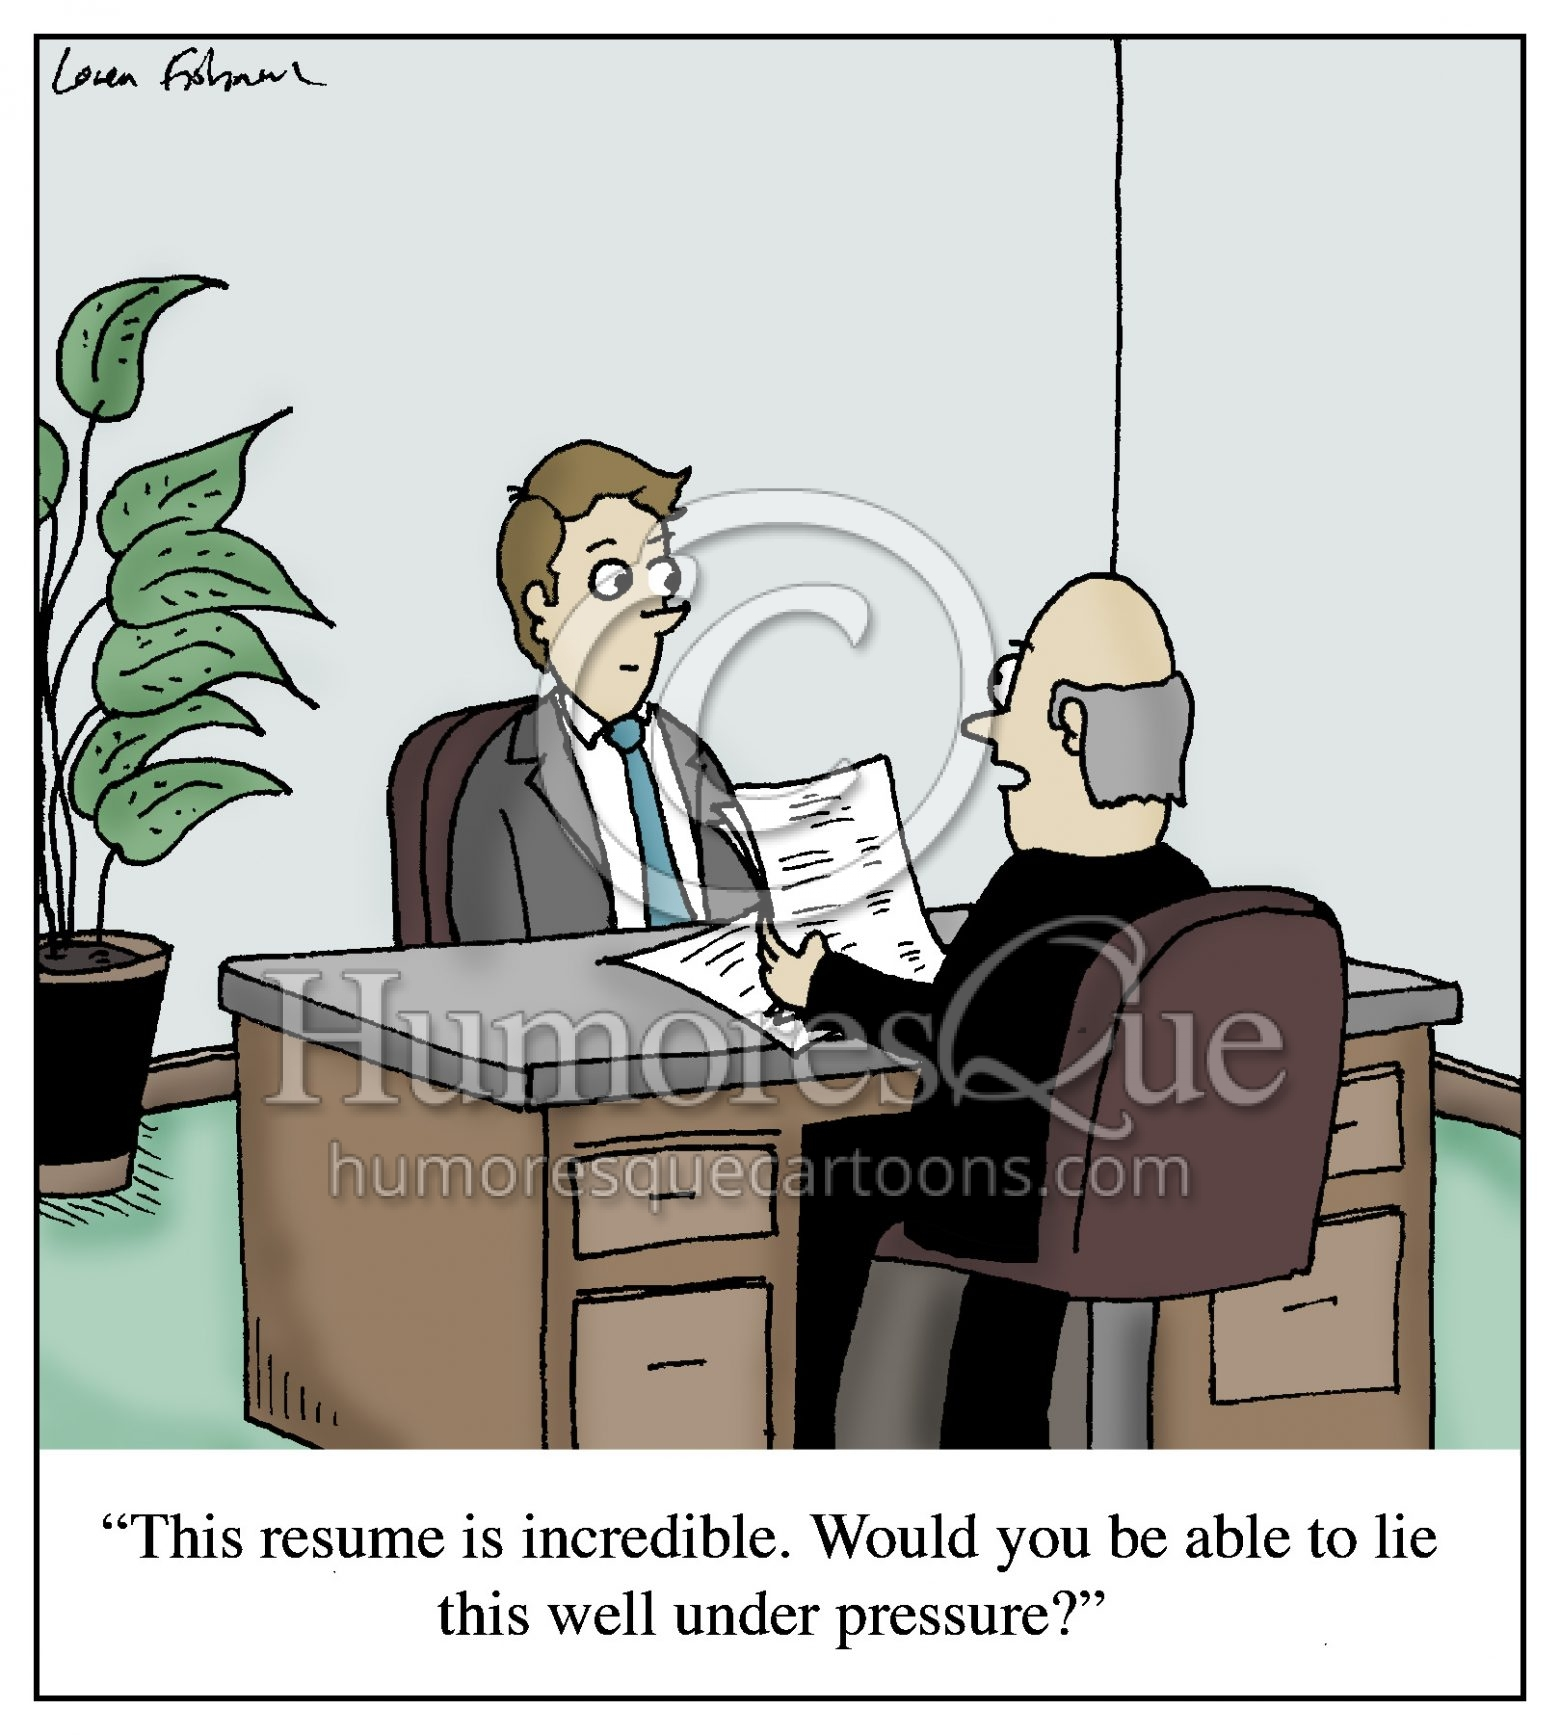 lying under pressure resume lie cartoon